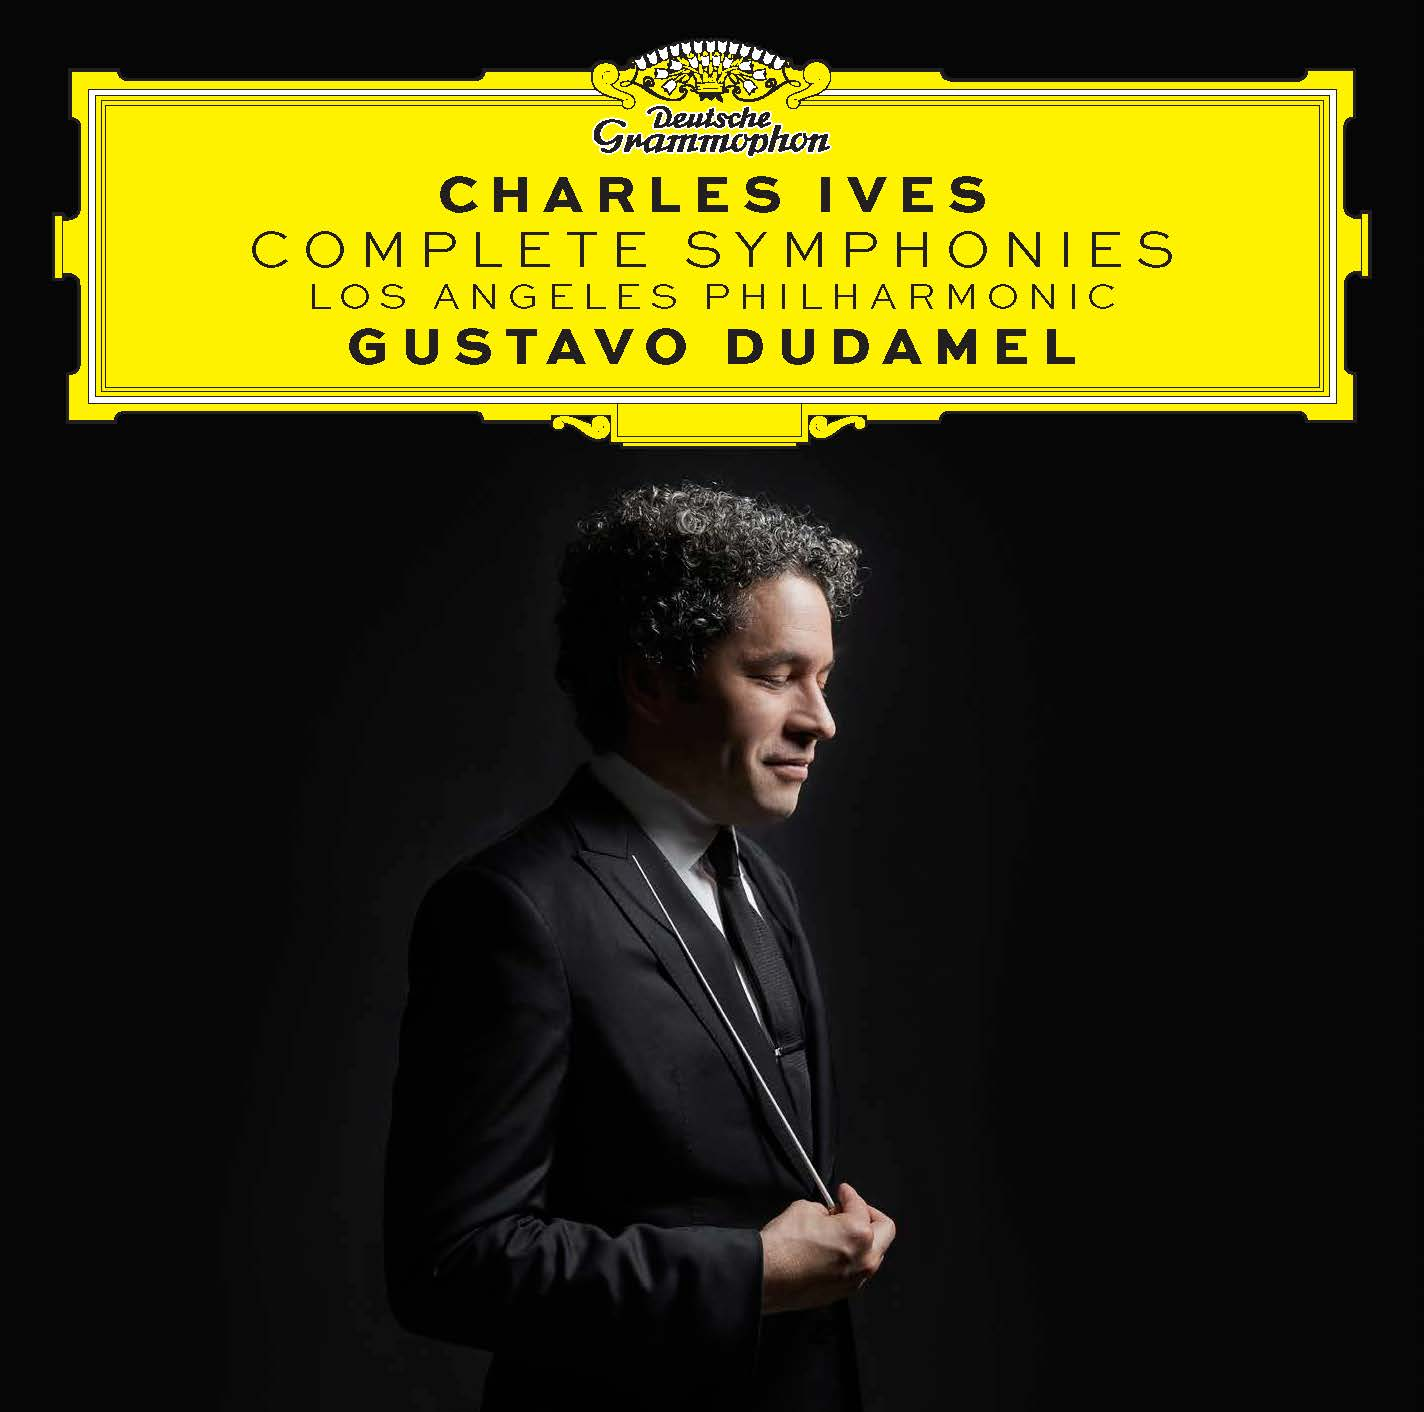 """Album cover for Ives: Complete Symphonies recording. Side profile of Gustavo Dudamel against a black background looking down, smiling, holding his baton. Above his head, """"Charles Ives, Complete Symphonies, Los Angeles Philharmonic, Gustavo Dudamel"""" in a yellow Deutsche Grammophon text box."""